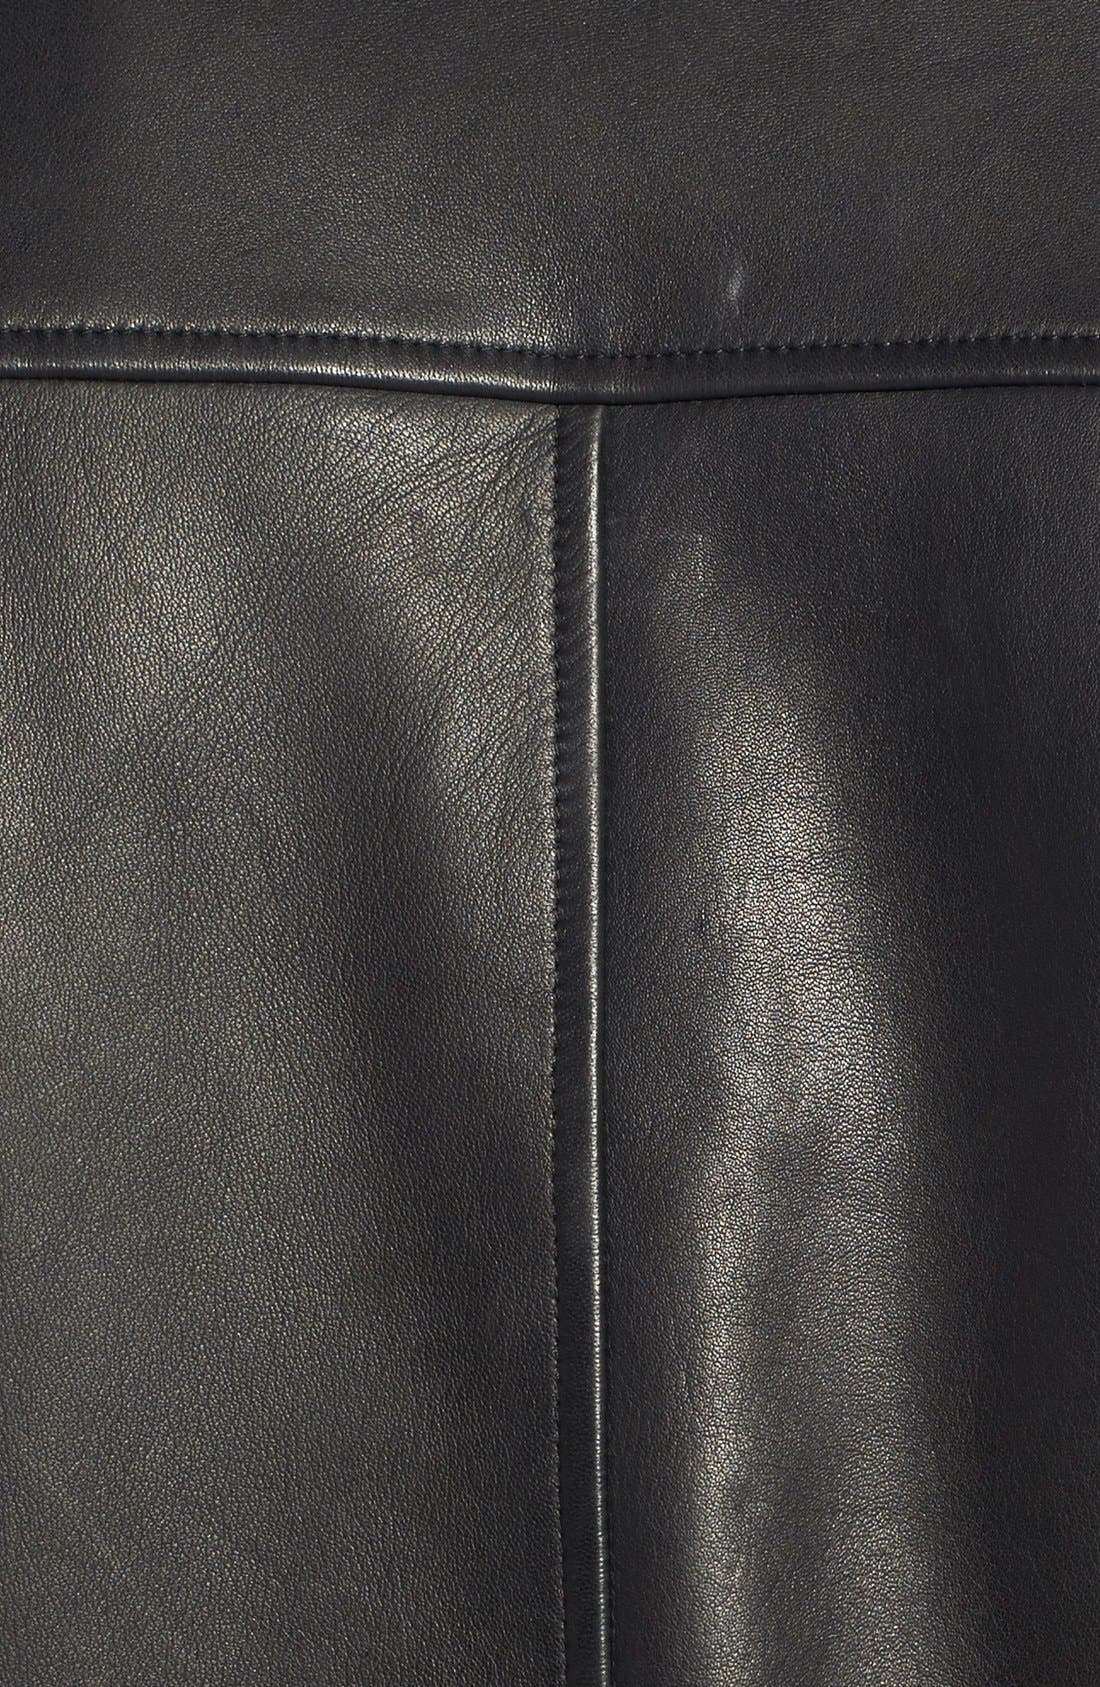 'Morvek L.Kelleher' Sheepskin Leather Jacket,                             Alternate thumbnail 3, color,                             BLACK